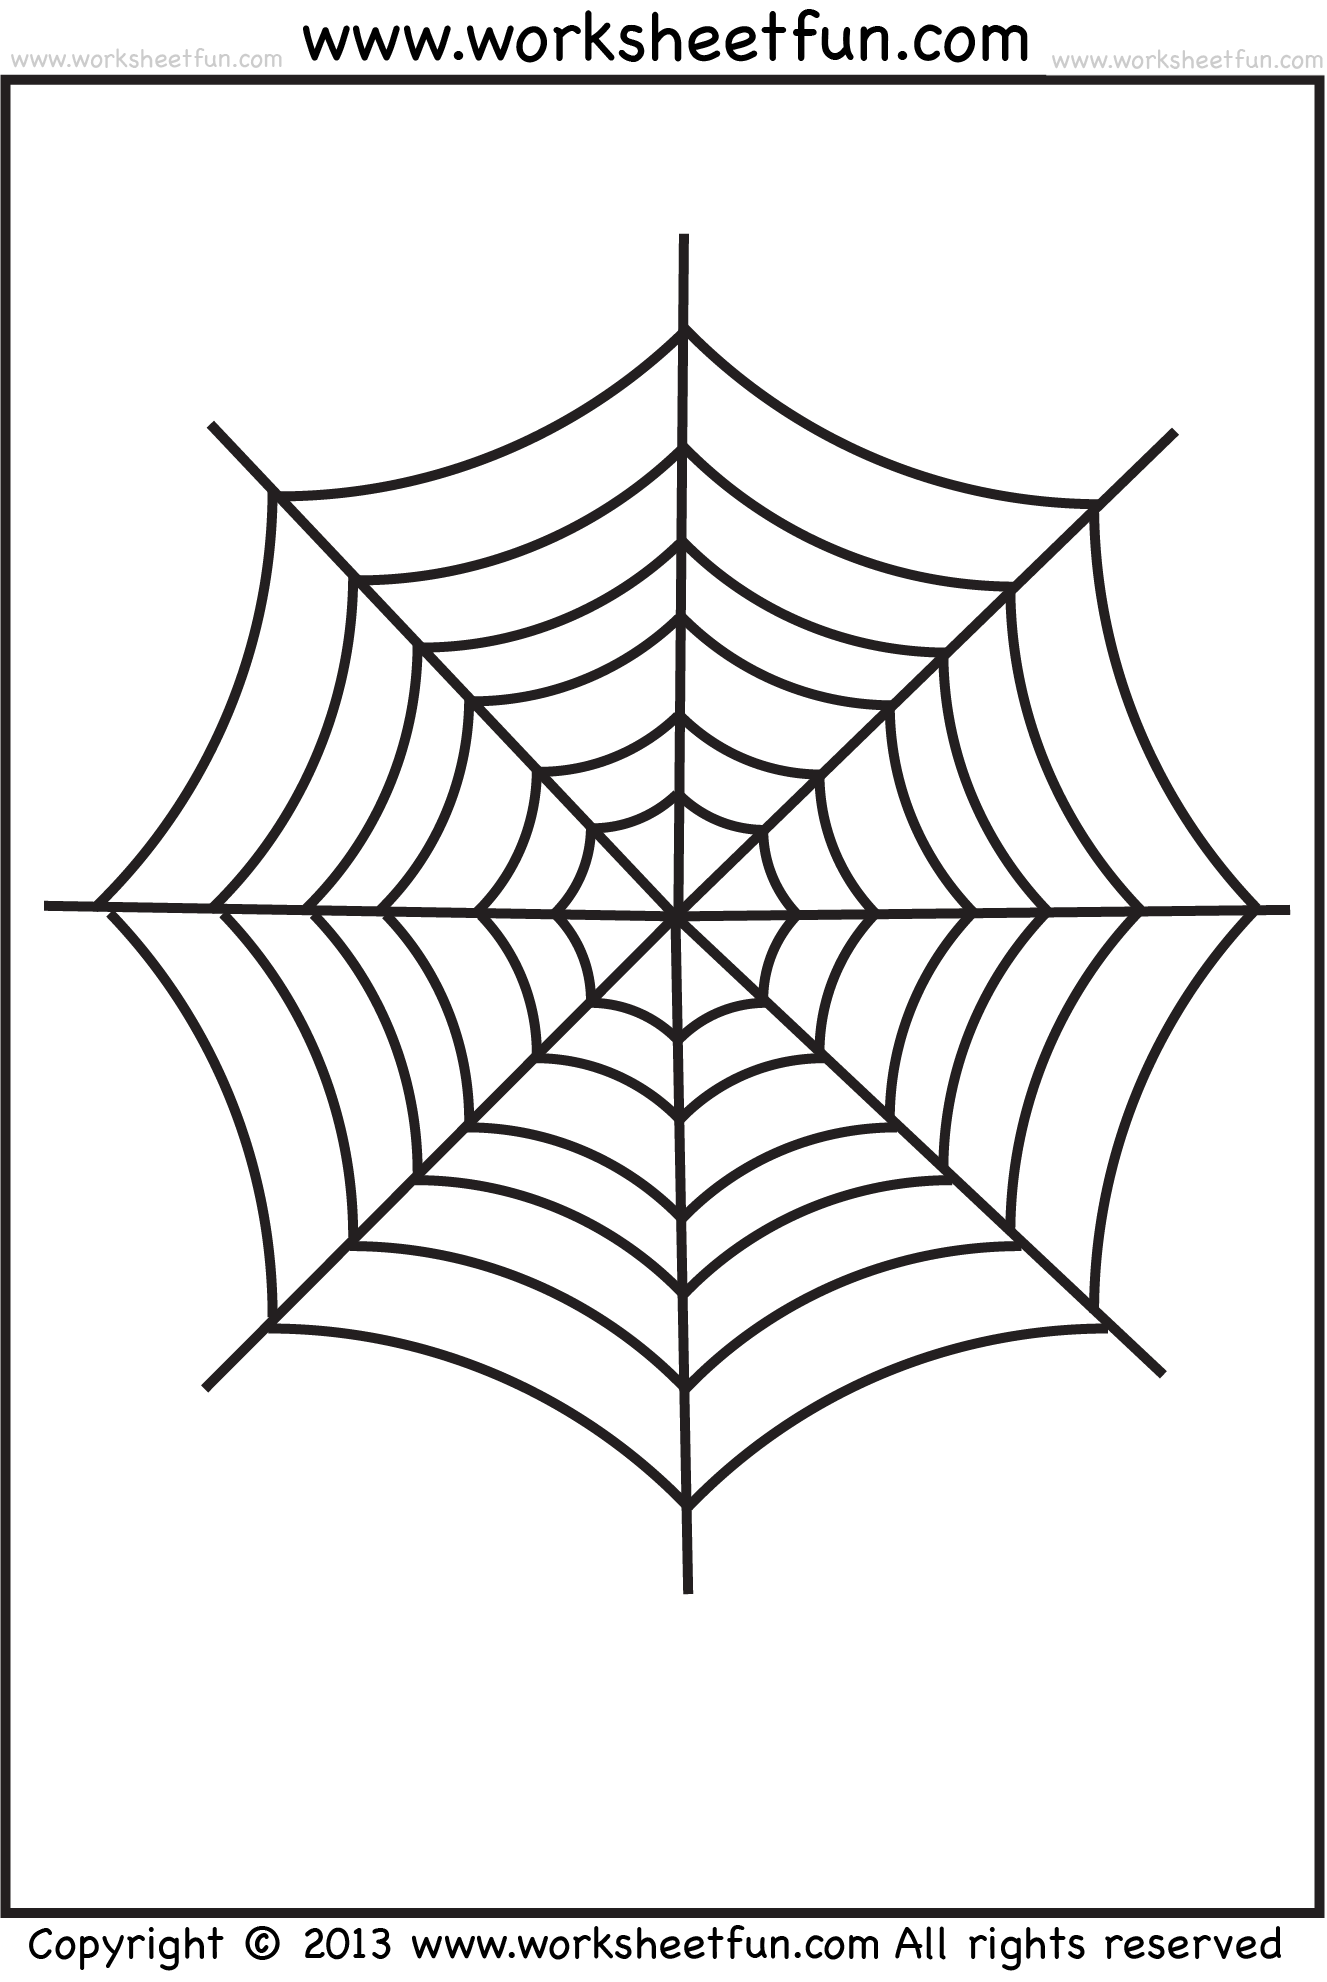 Drawn spider tracing FREE Web Halloween Spider /